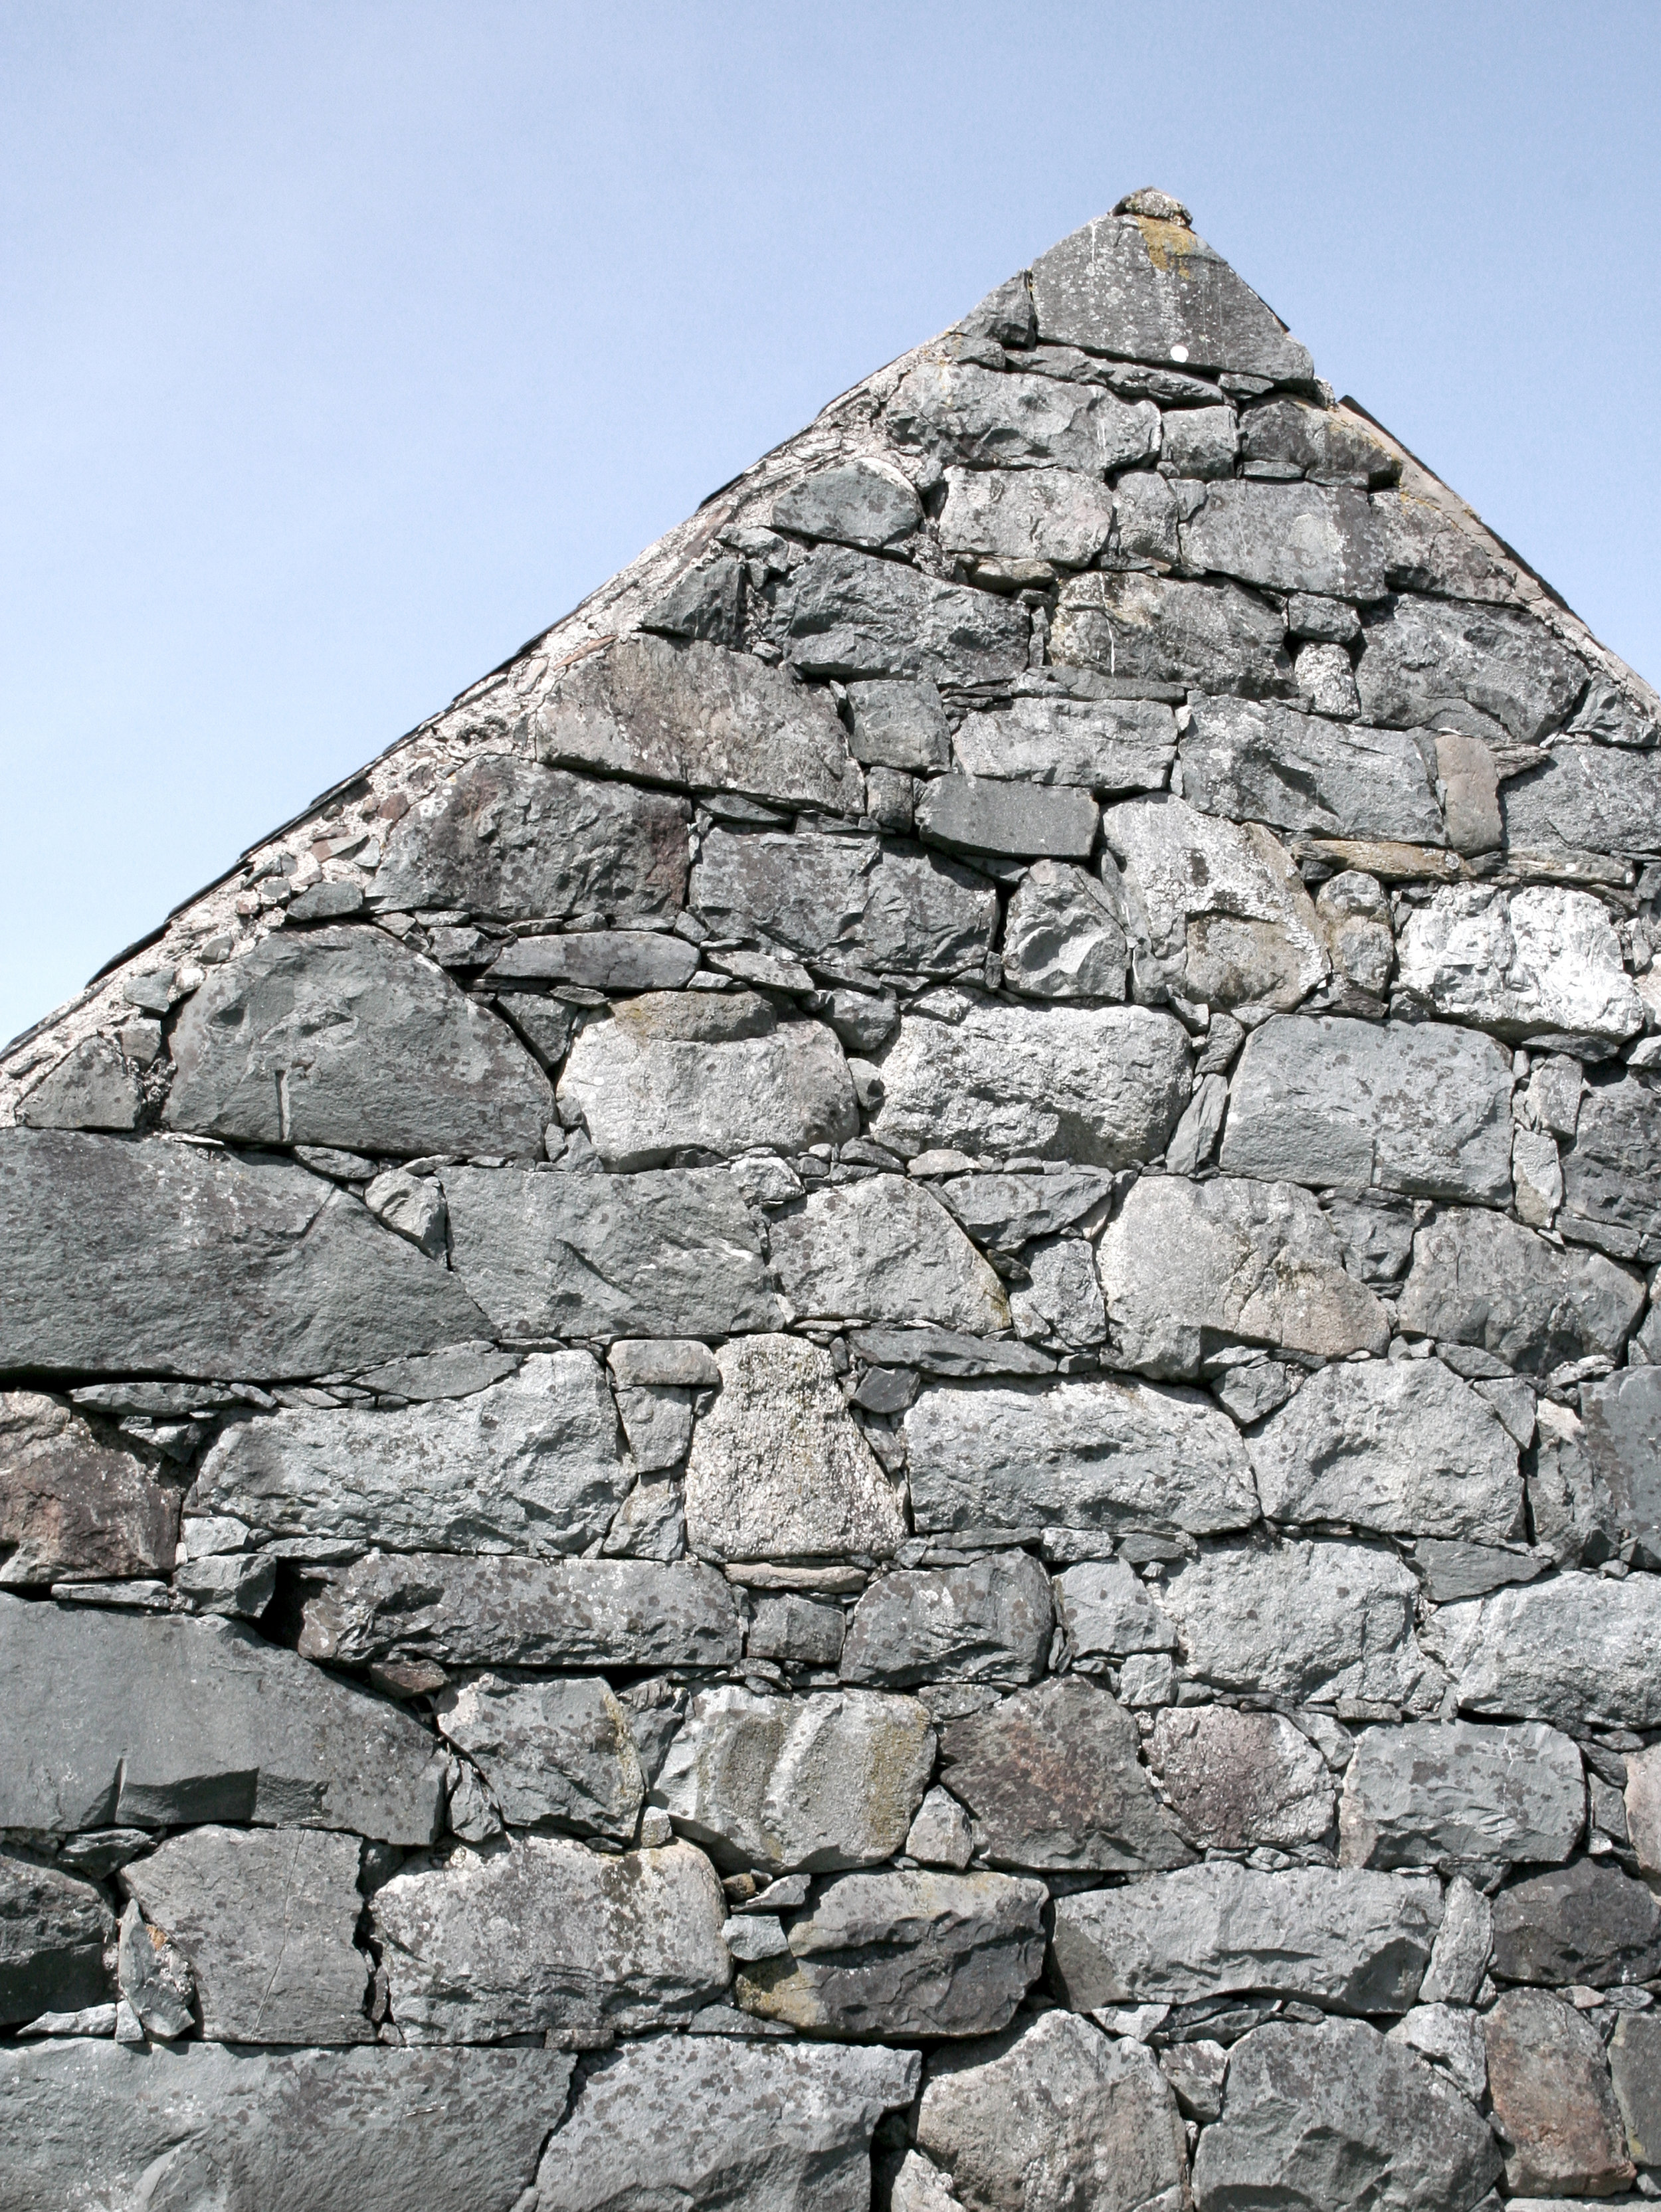 Stone gable of traditional/vernacular Welsh architecture, demonstrating Building Simply